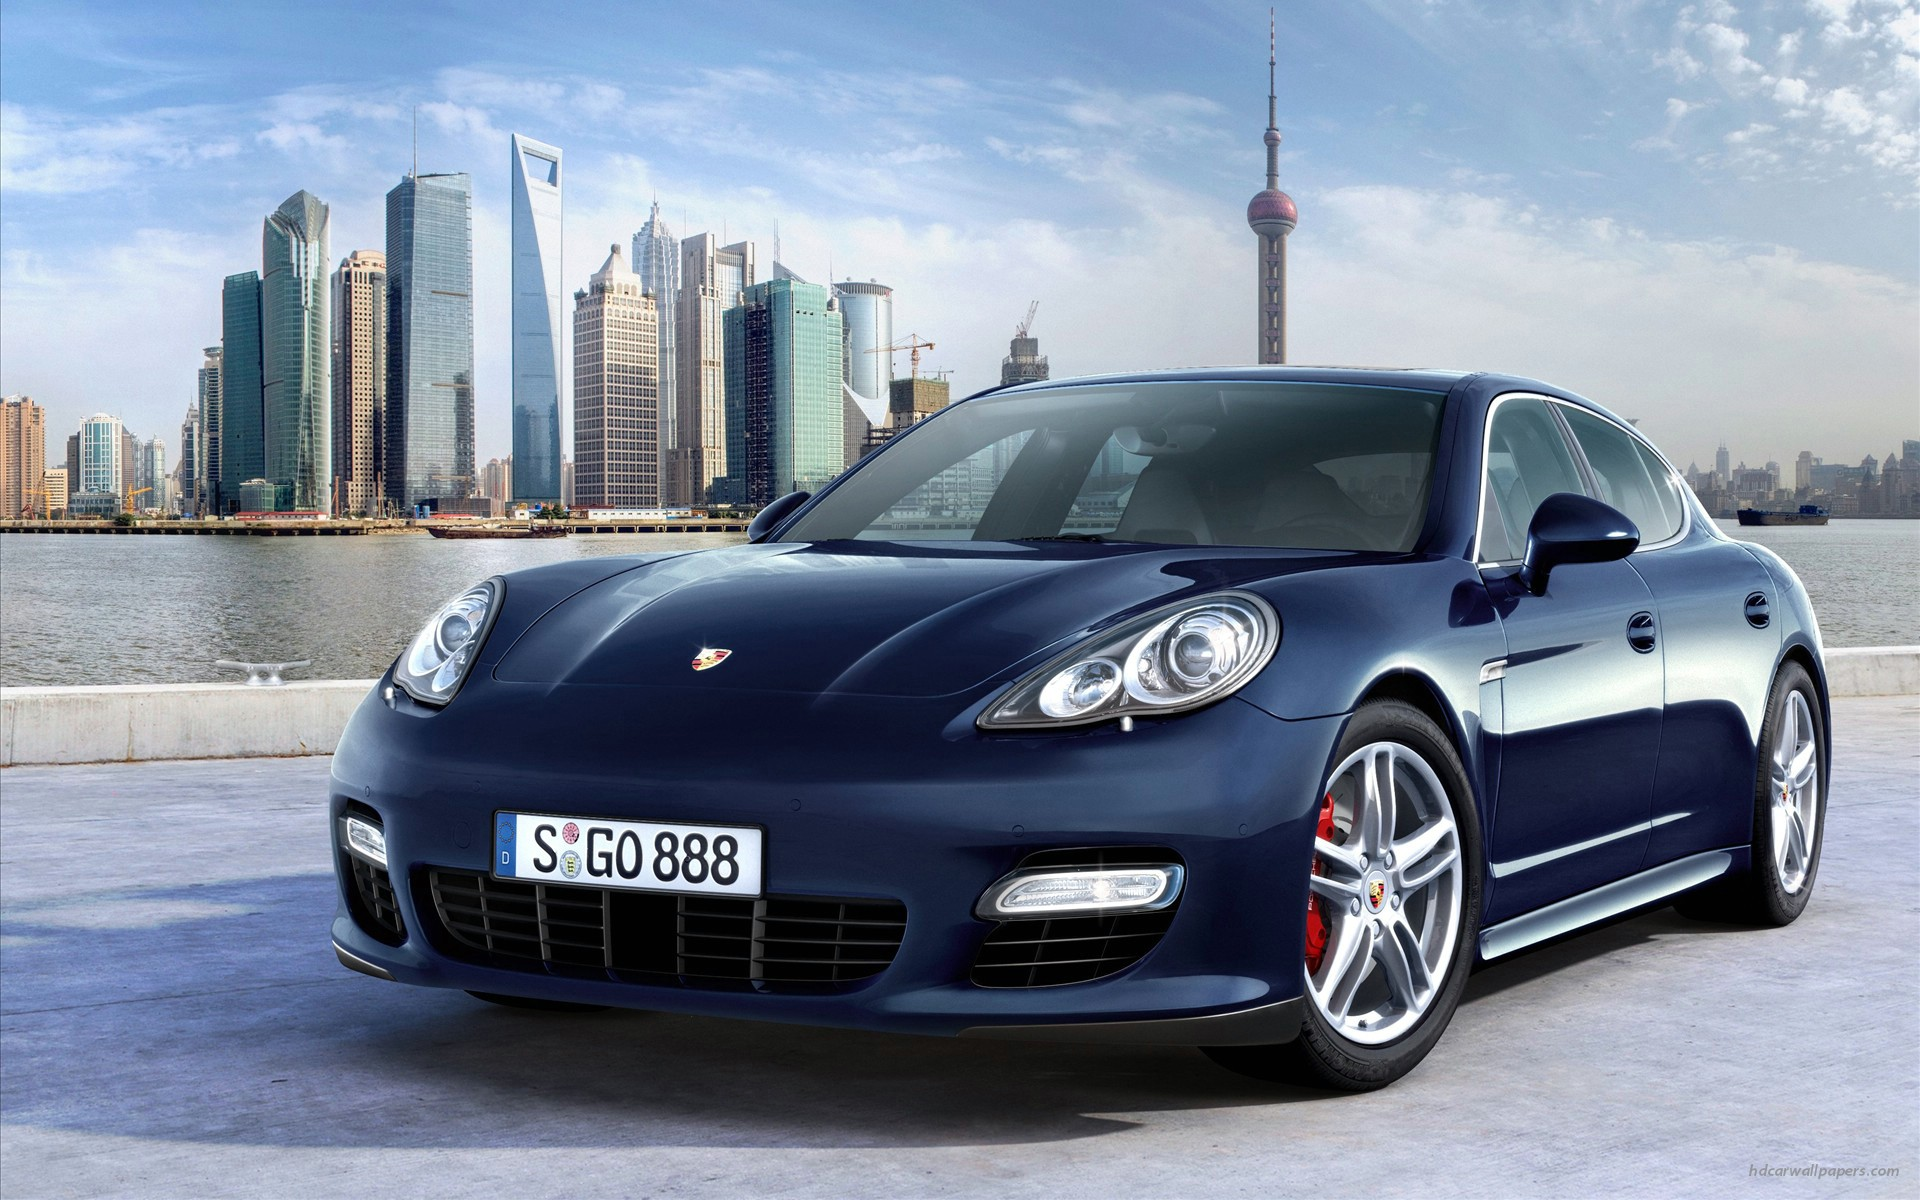 2010 Porsche Panamera 9 Wallpapers HD Wallpapers 1920x1200